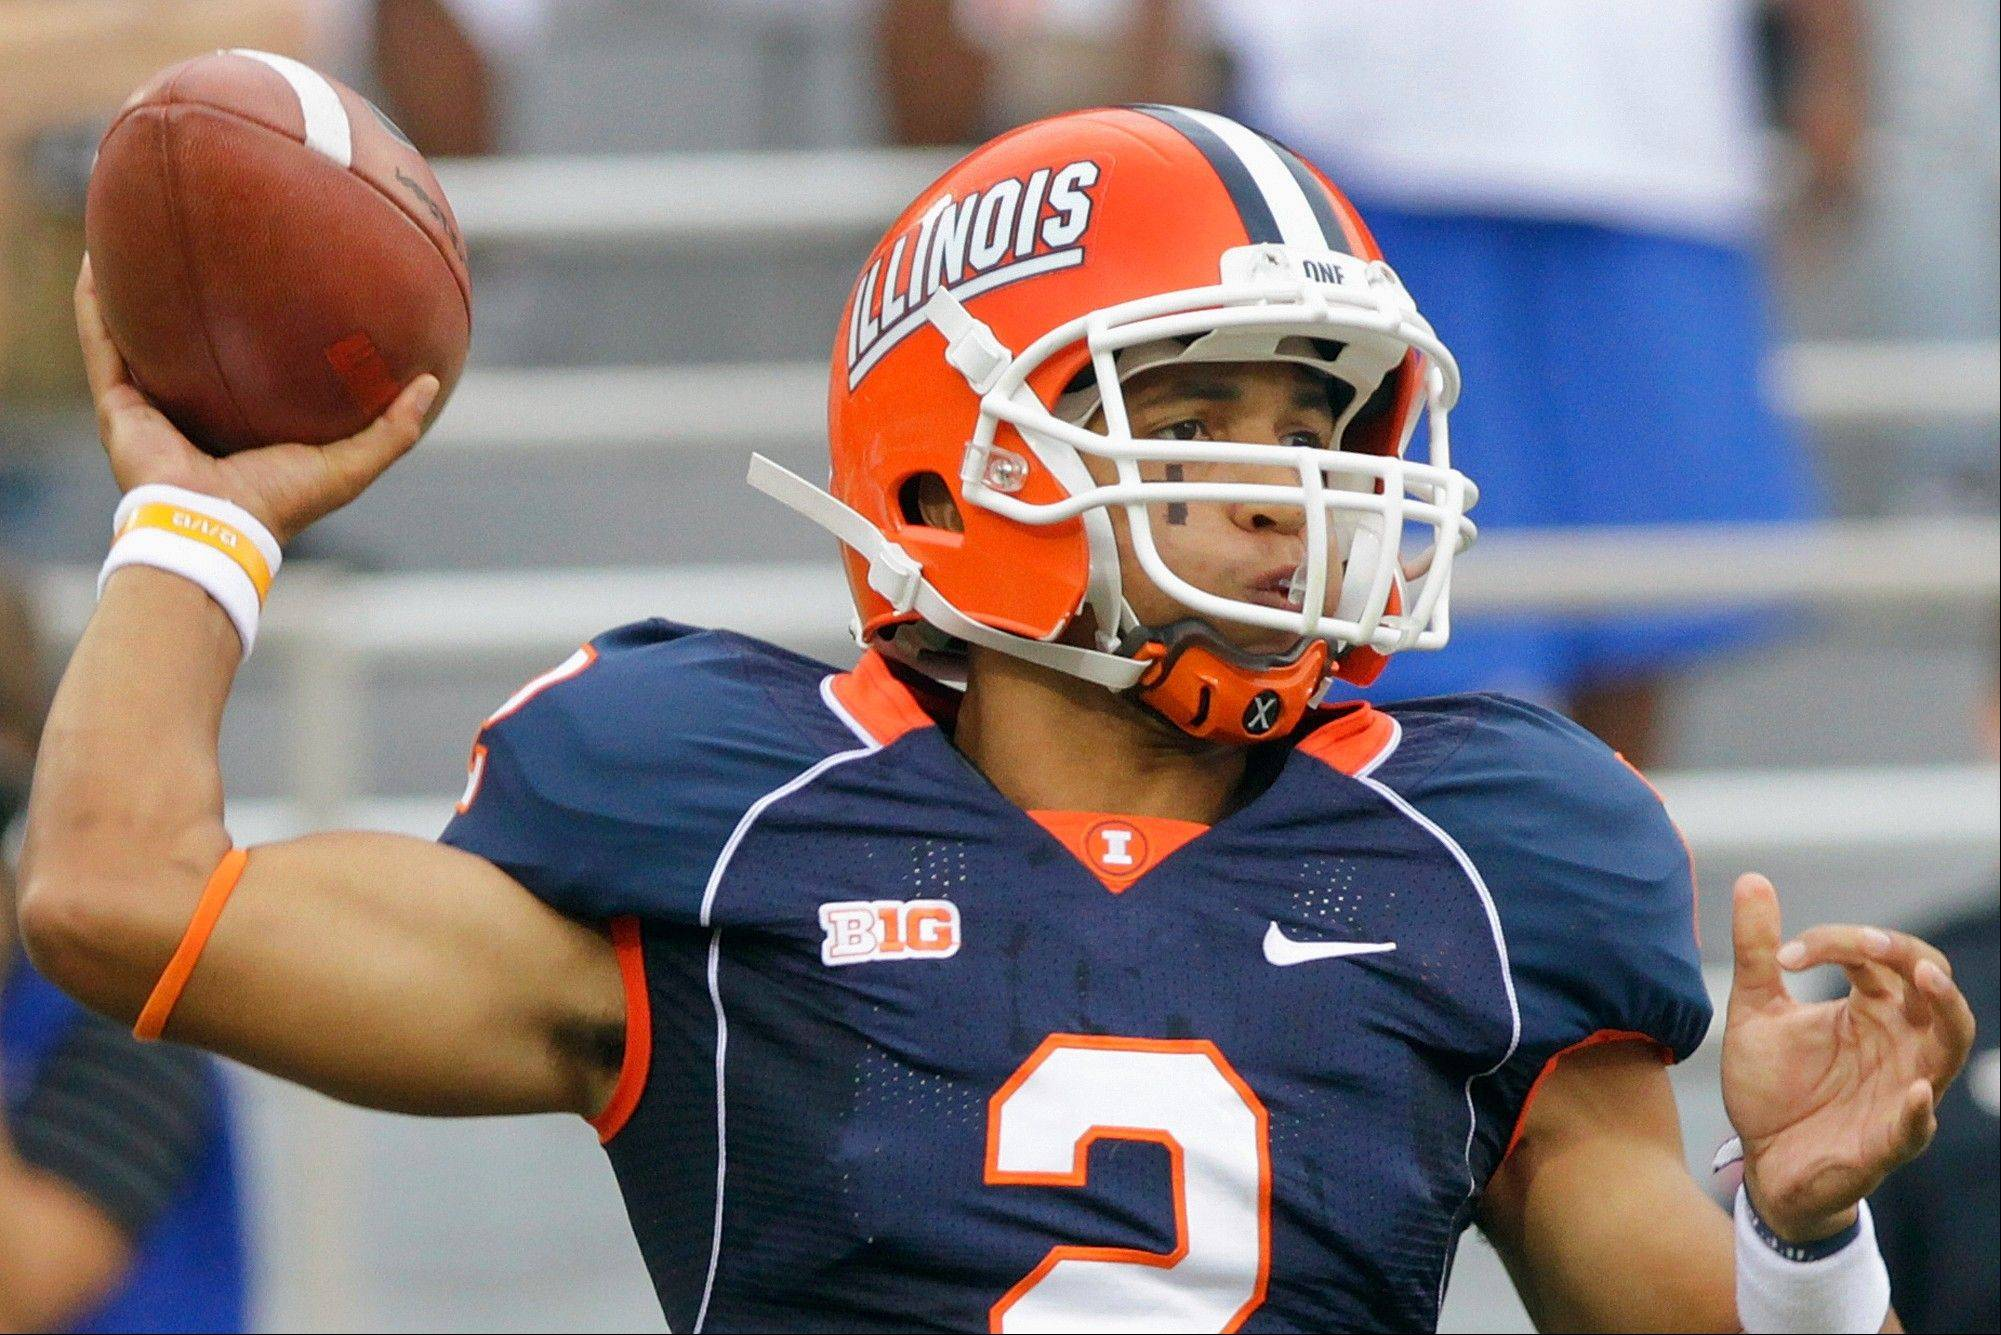 Illinois quarterback Nathan Scheelhaase passes against Western Michigan during Saturday�s win in Champaign, Ill. Scheelhaase injured his ankle in the game.